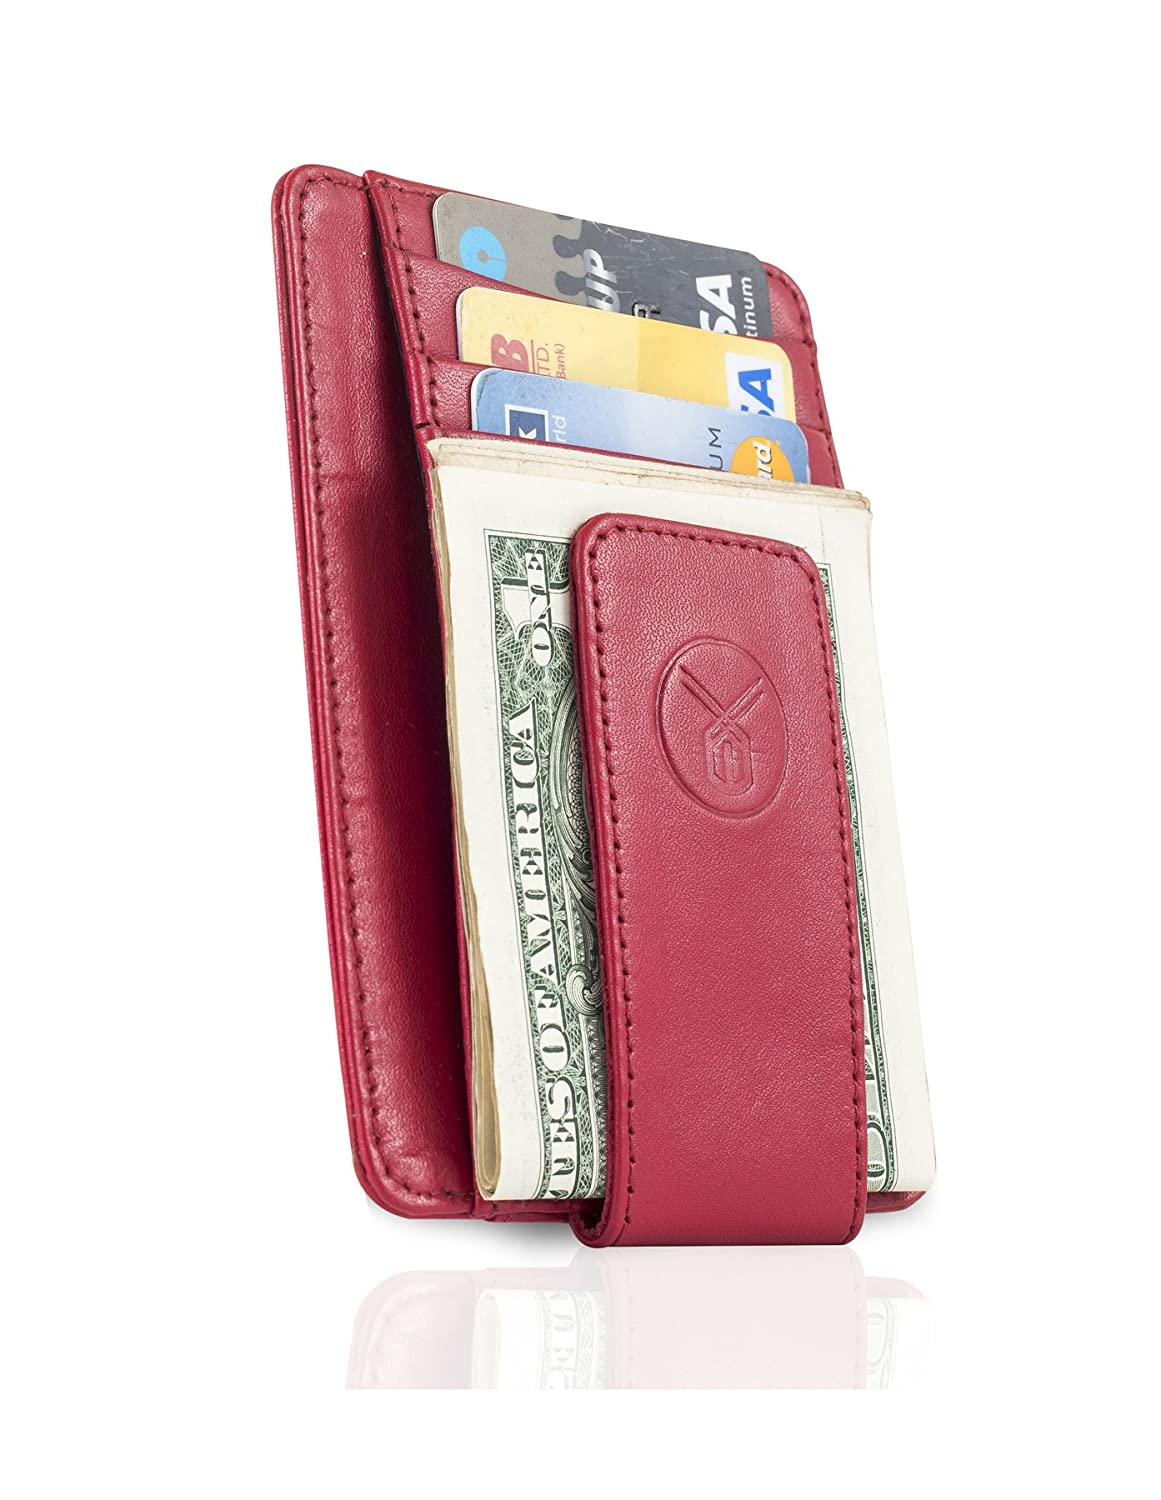 Money Clip Genuine Leather RFID Minimalist Wallet for Men by Exemplar MC803 MC803 BL